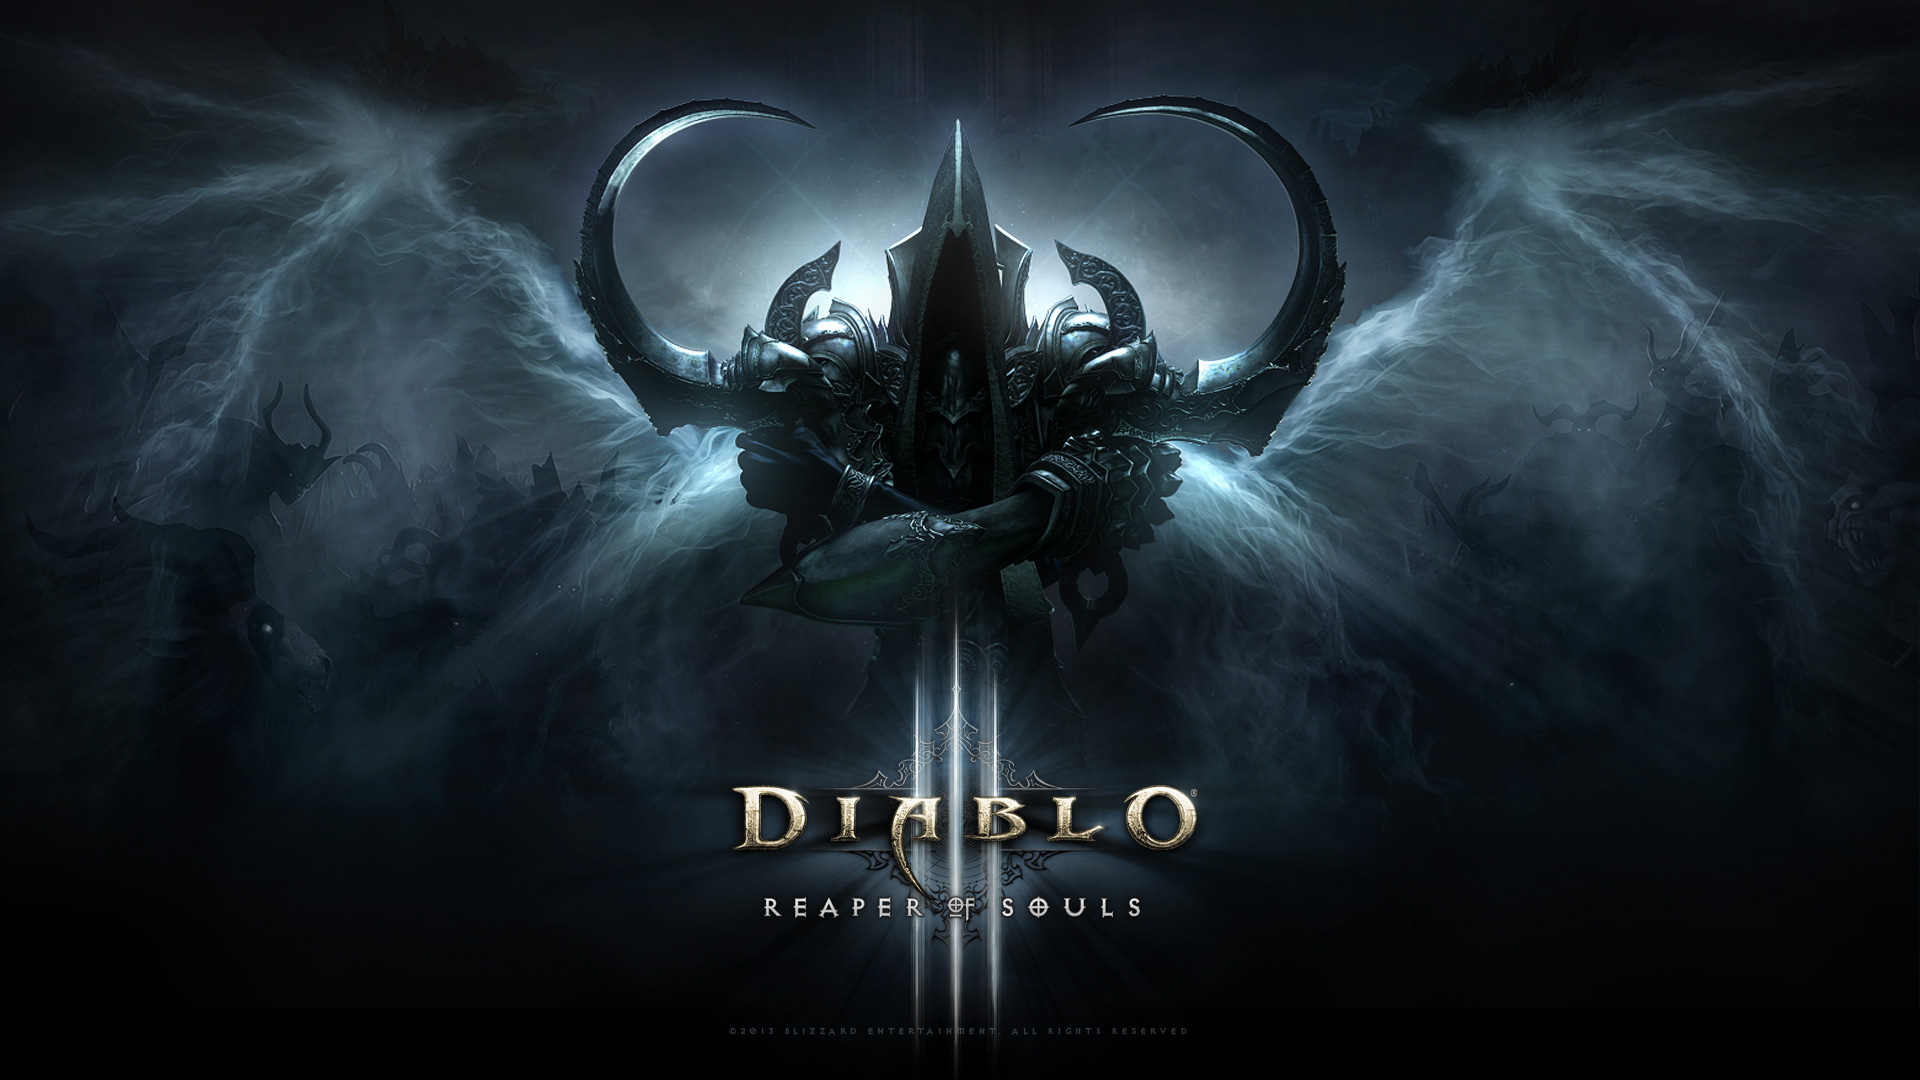 diablo 3 reaper of souls logo images pictures becuo